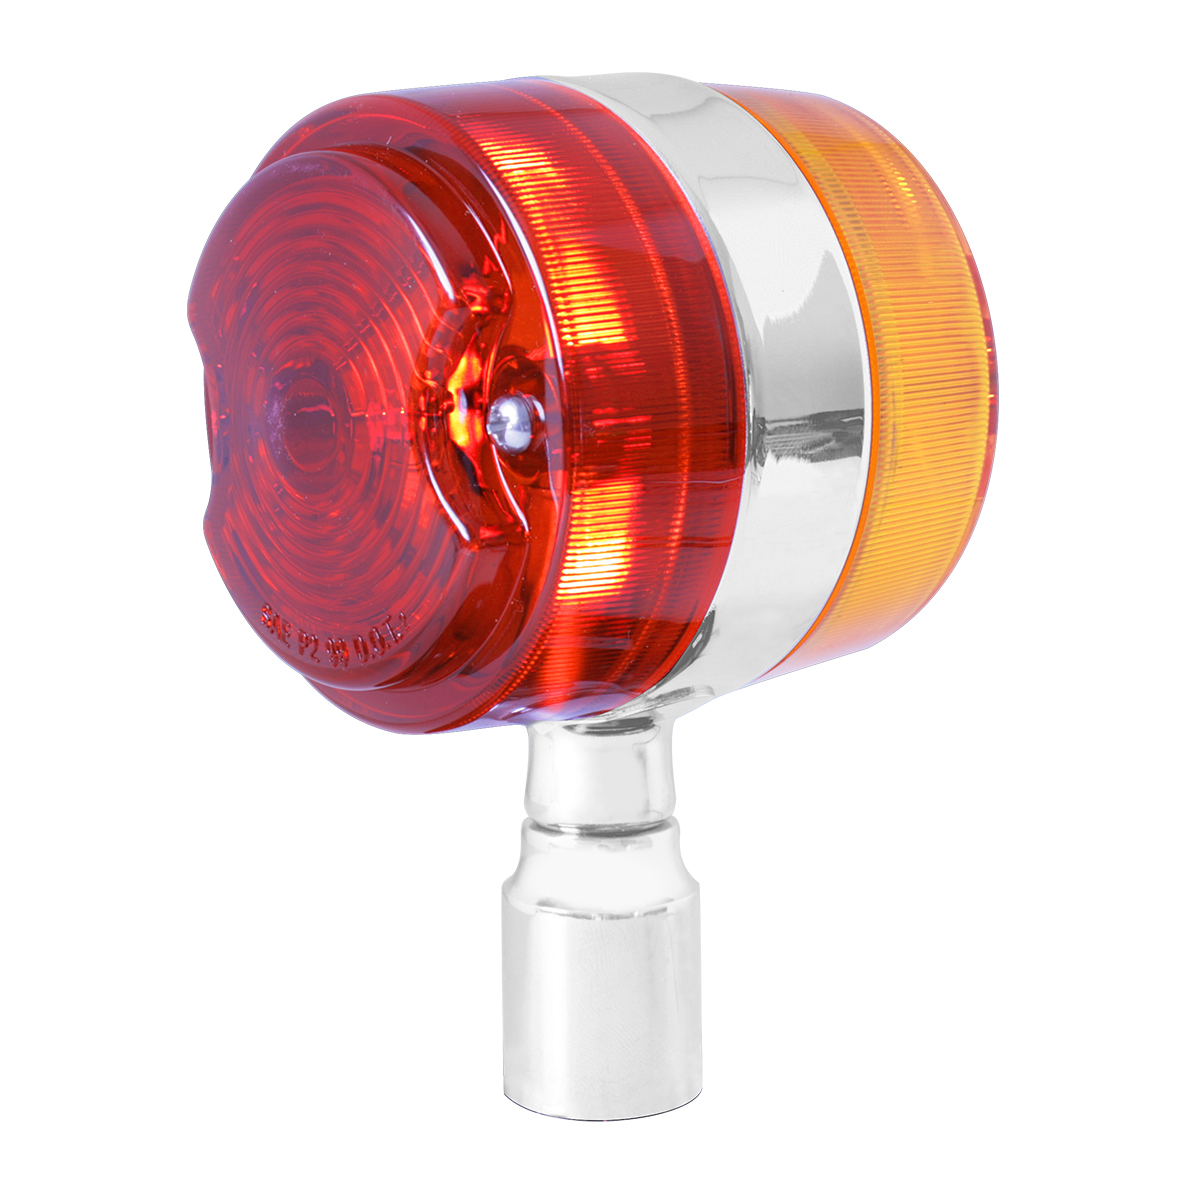 #94683 Stainless Steel Double Face Marker Light w/out Stainless Steel Rim - Projected Style Lens